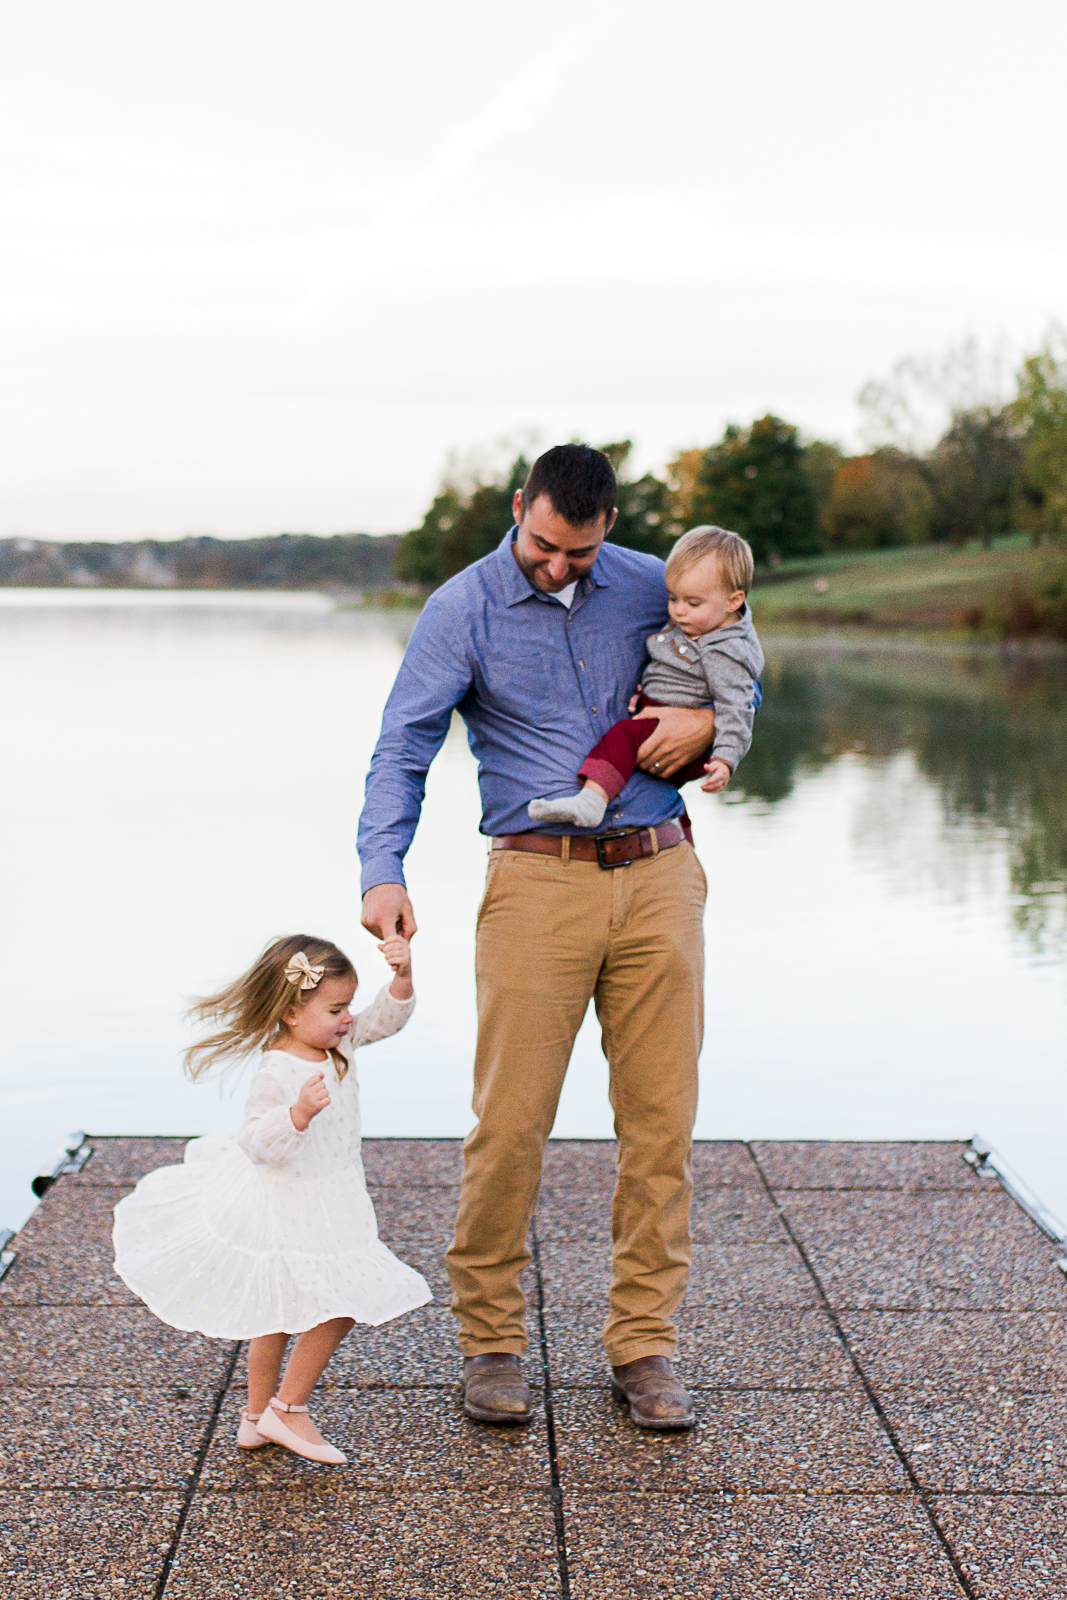 Father dances with his daughter on a dock, Kansas City family photographer, sunrise family session at Shawnee Mission Park, Rebecca Clair Photography